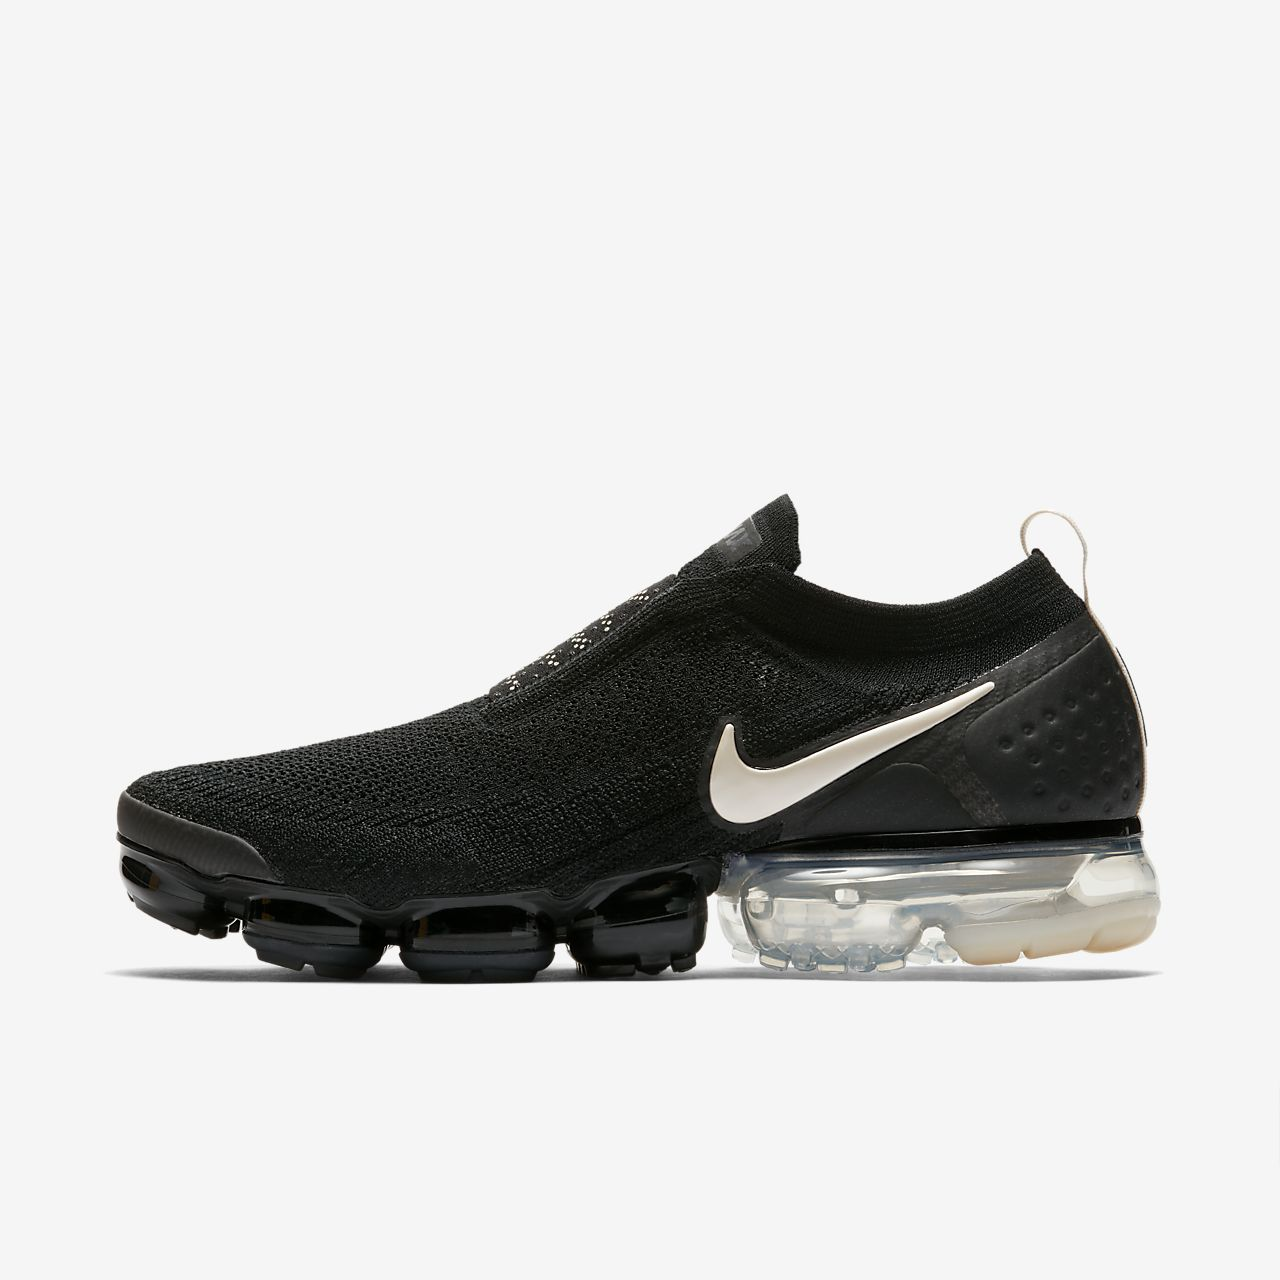 reputable site 402cd 1d142 ... Nike Air VaporMax Flyknit Moc 2 sko